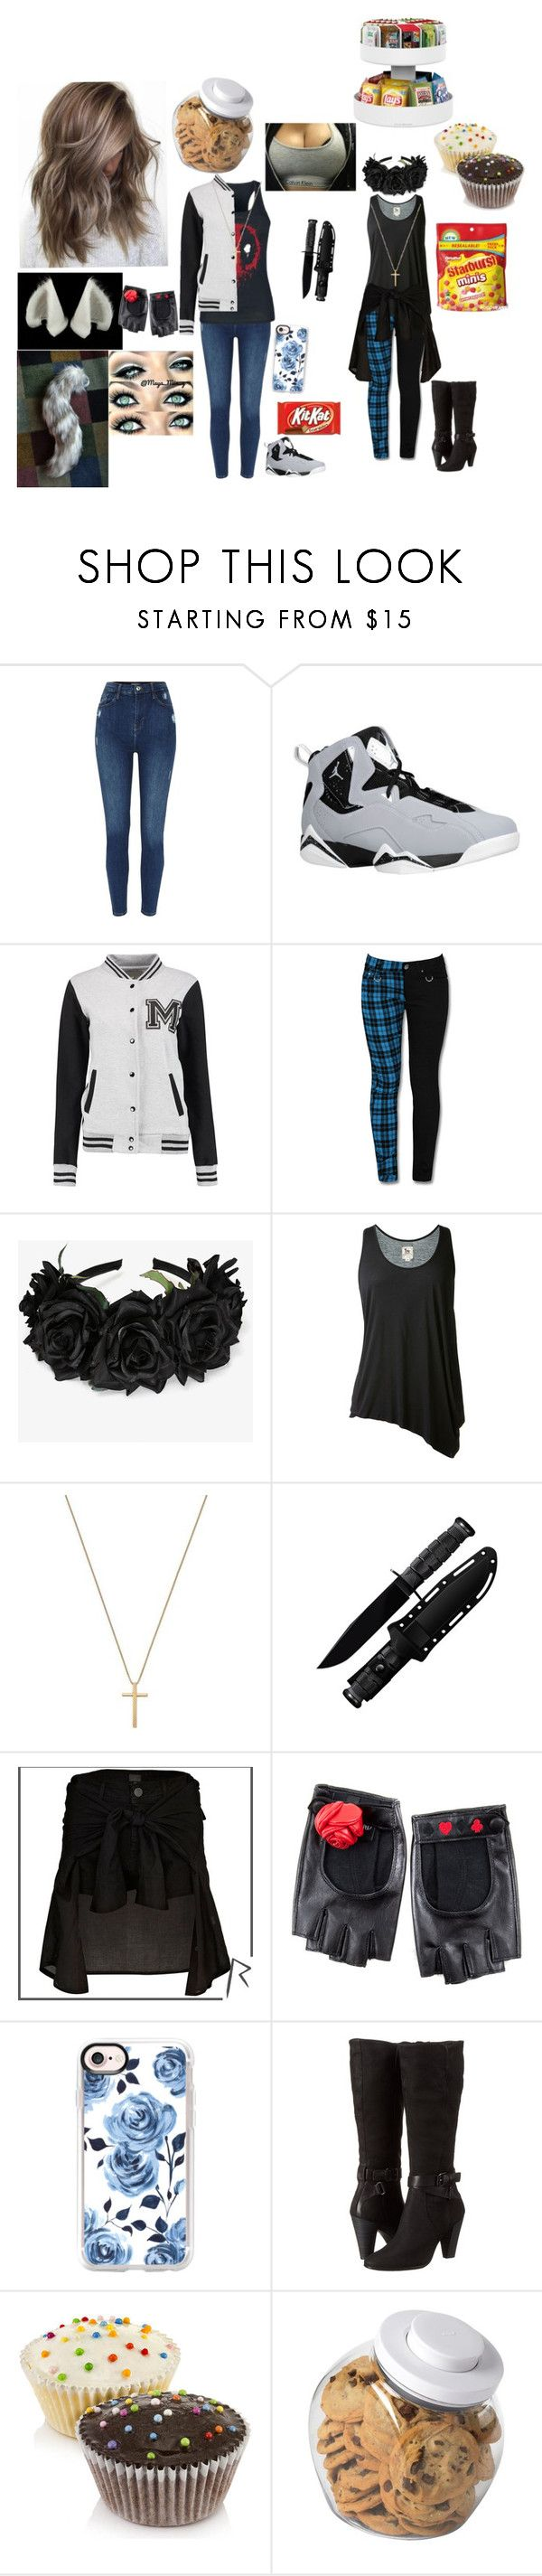 """""""Nette Camping With Aphmau"""" by rhiannabliss on Polyvore featuring interior, interiors, interior design, home, home decor, interior decorating, Maison Kitsuné, L'Agence, Gucci and Cold Steel"""